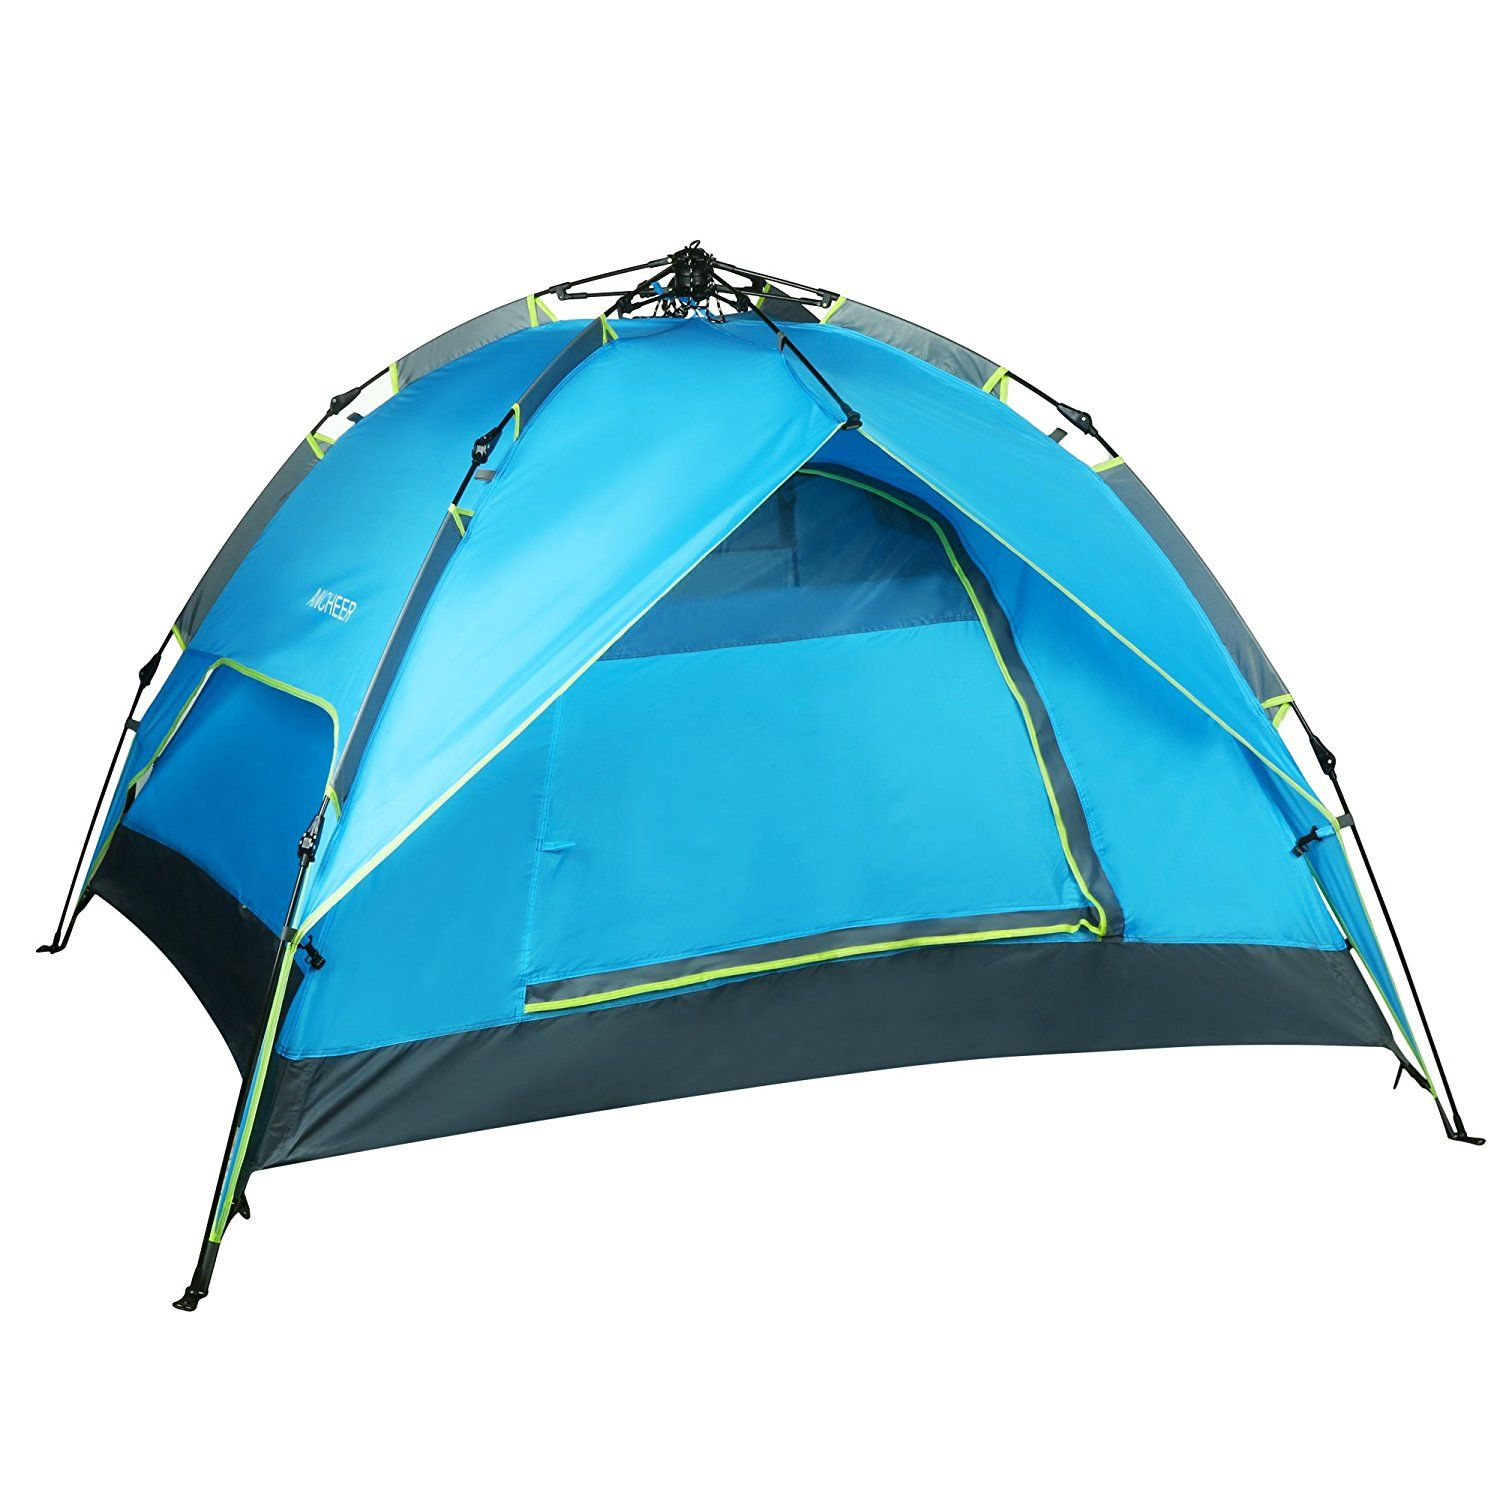 Ancheer C&ing Tent Blue Double Layers 2-3 Person Quick Pop Up Waterproof Hiking Portable  sc 1 st  Pinterest & Ancheer Camping Tent Blue Double Layers 2-3 Person Quick Pop Up ...